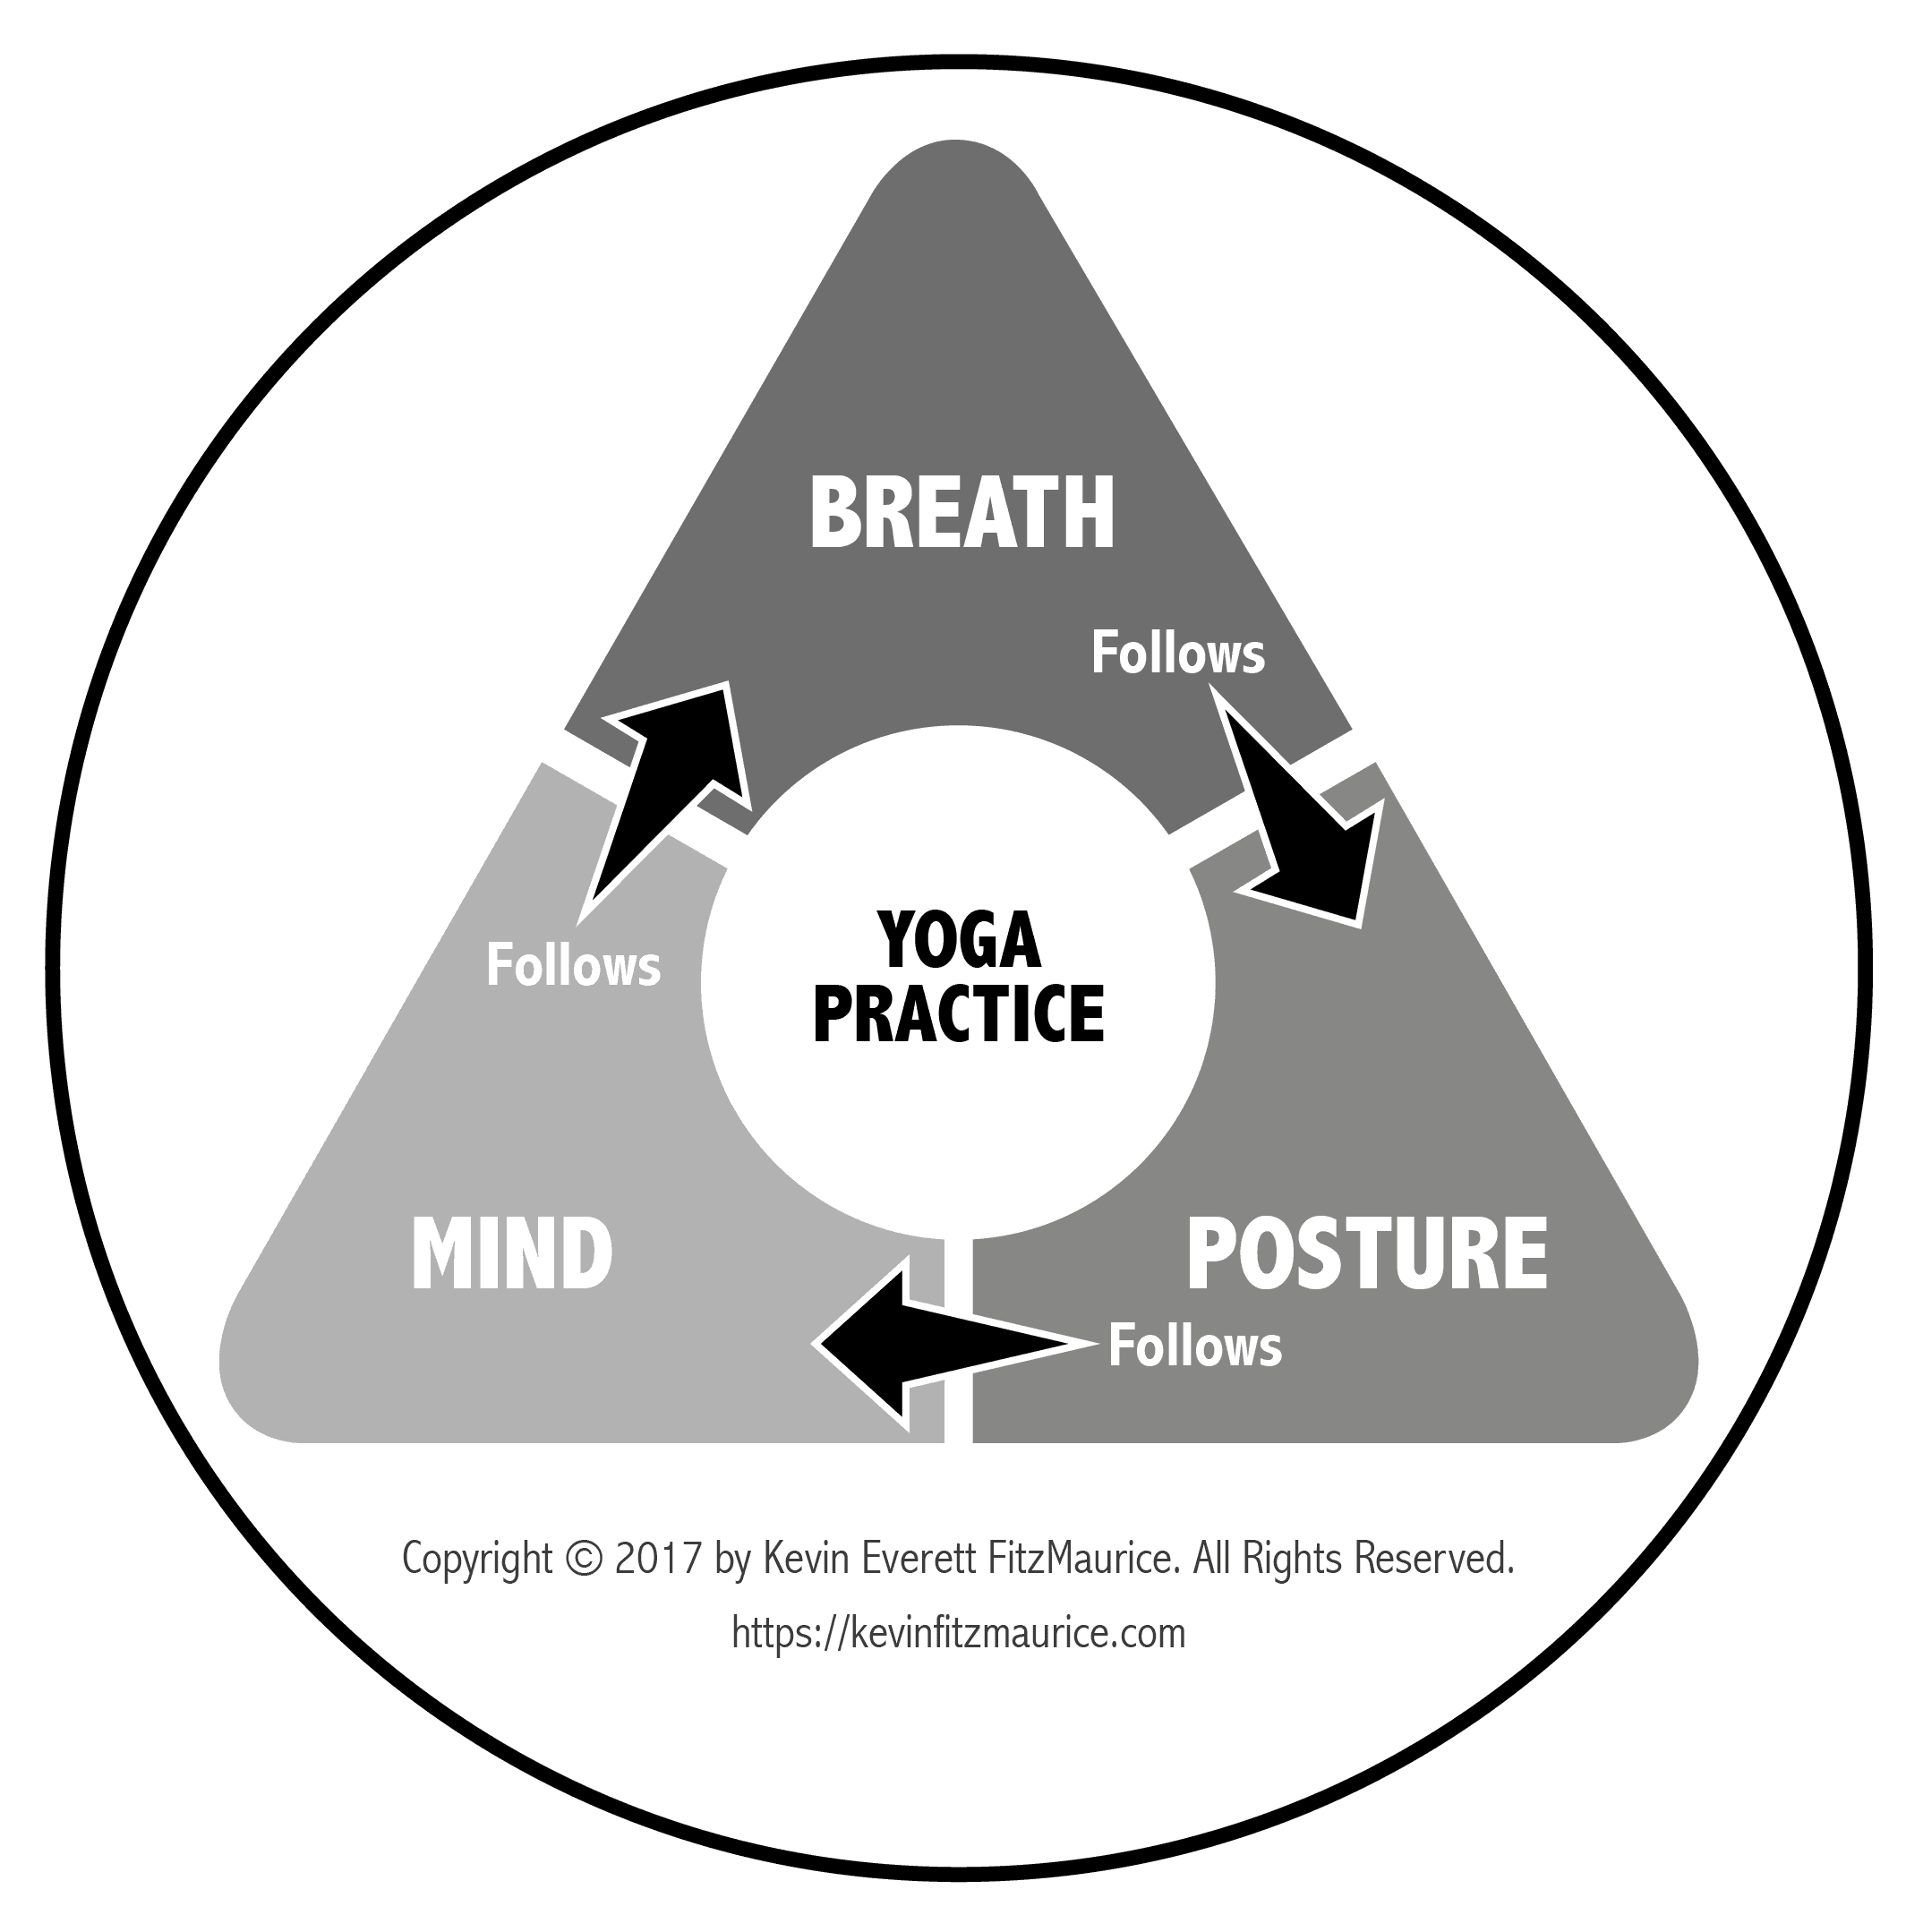 Yoga Breath Posture Mind Diagram